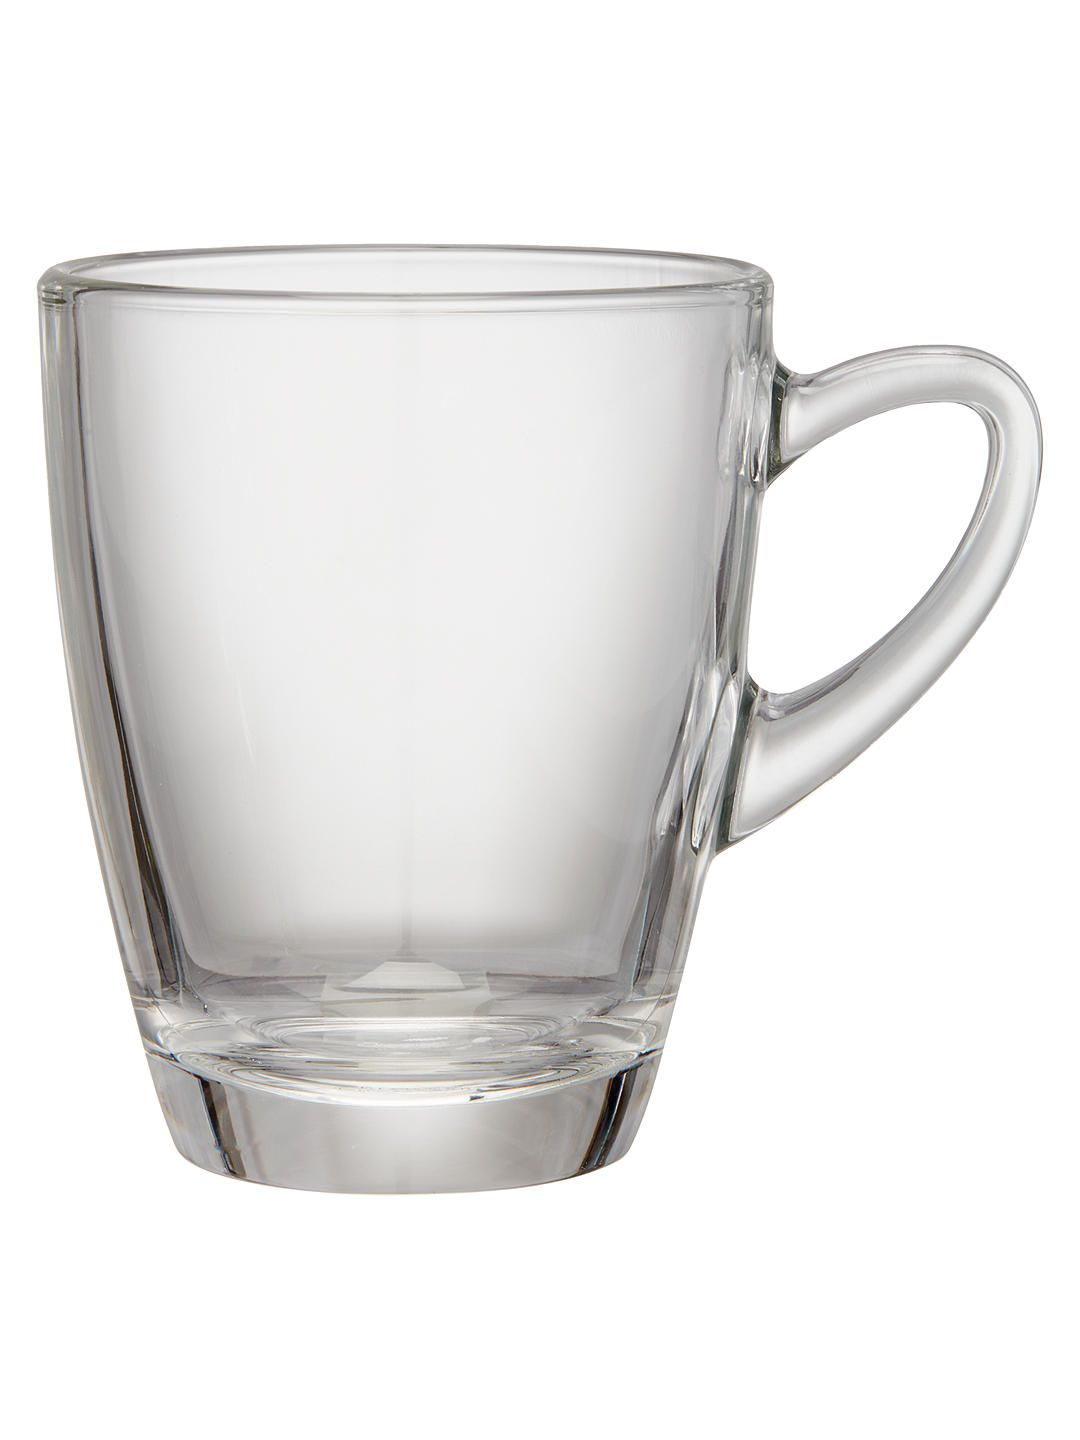 John lewis partners coffee connoisseur glass kenya mug 320ml buyjohn lewis partners coffee connoisseur glass kenya mug 320ml clear online at johnlewis gumiabroncs Image collections